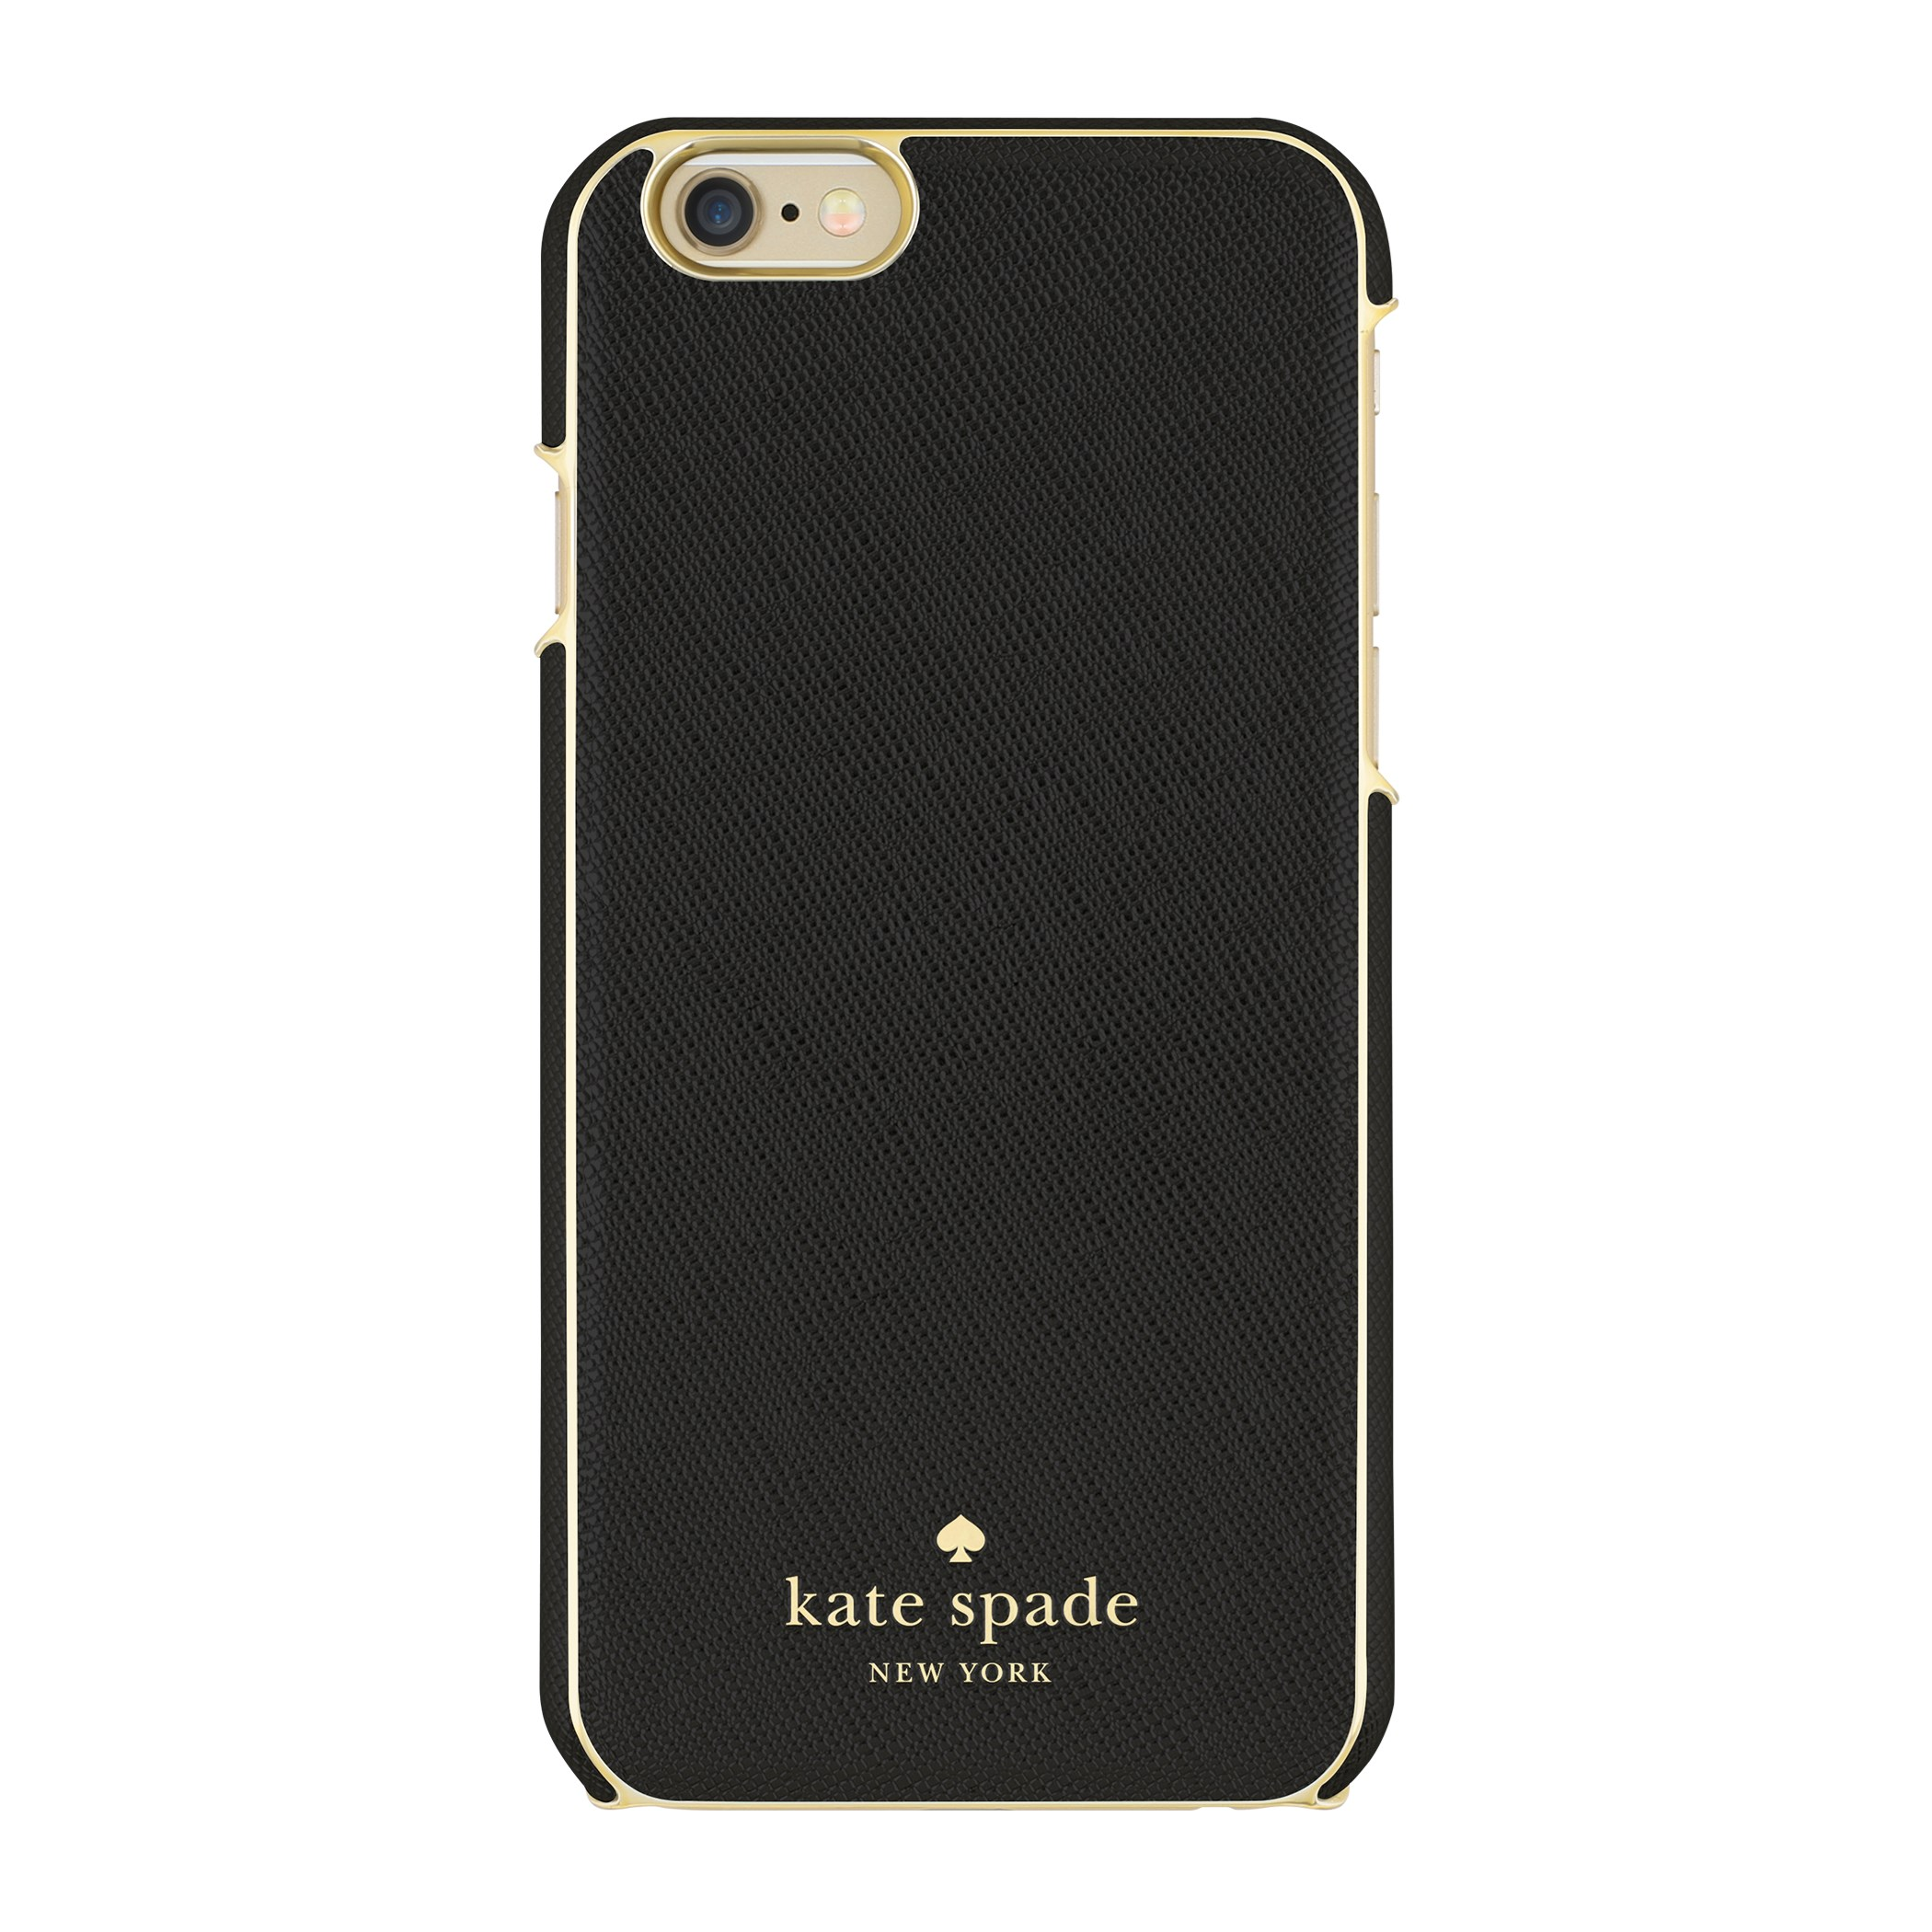 """Gift idea: Kate Spade iPhone 6 case Who's it for: your work wife. <br?<br>You're work besties but maybe not life besties, so you want to get her something nice but nothing too OTT. <br><br>So get a fancy iPhone cover and be done with it! <a href=""""http://www.myer.com.au"""">Myer</a> $79.95"""